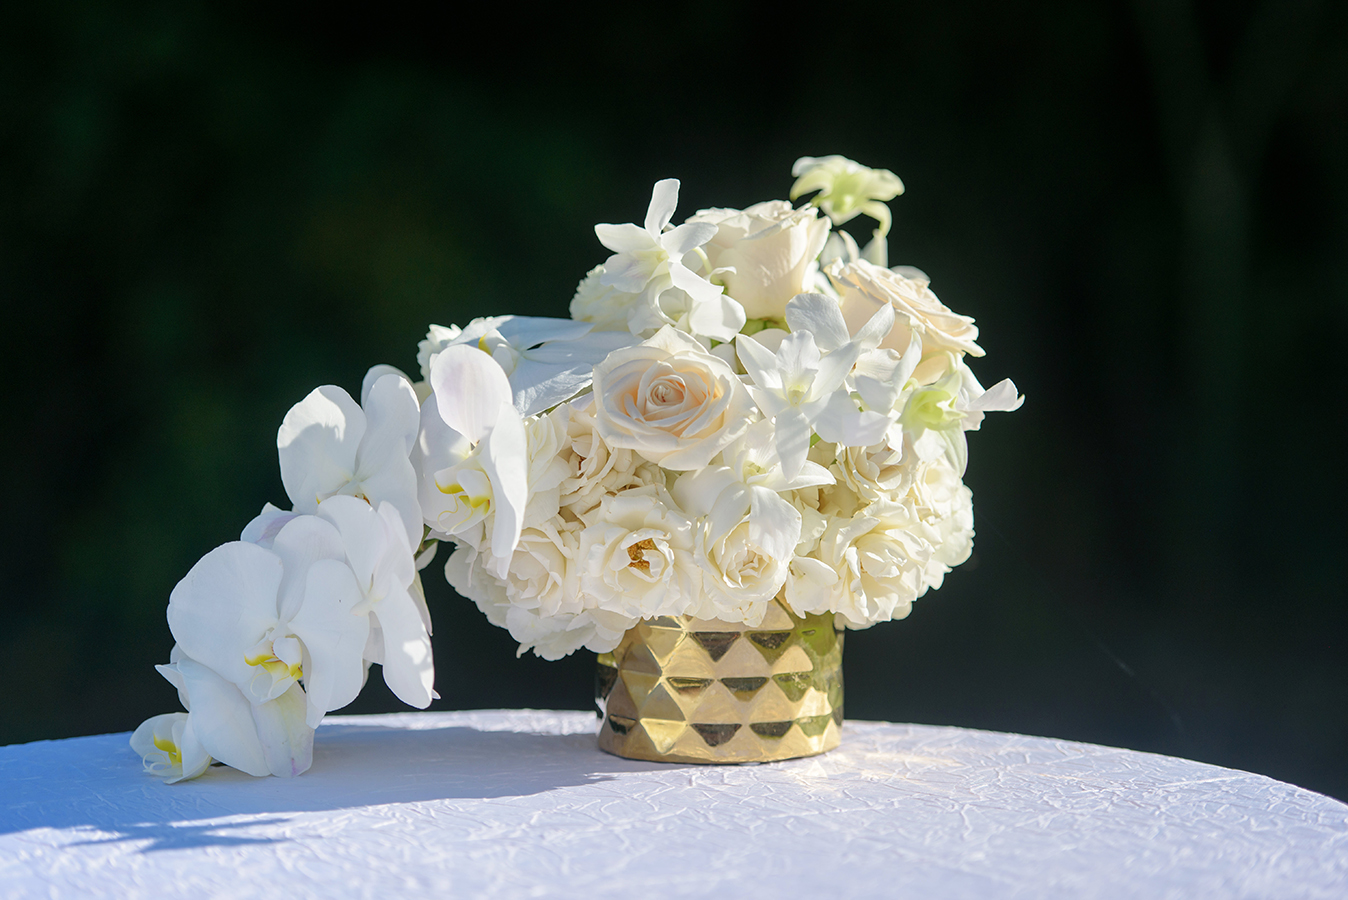 Floral arrangements included ivory roses and phaelaenopsis orchids